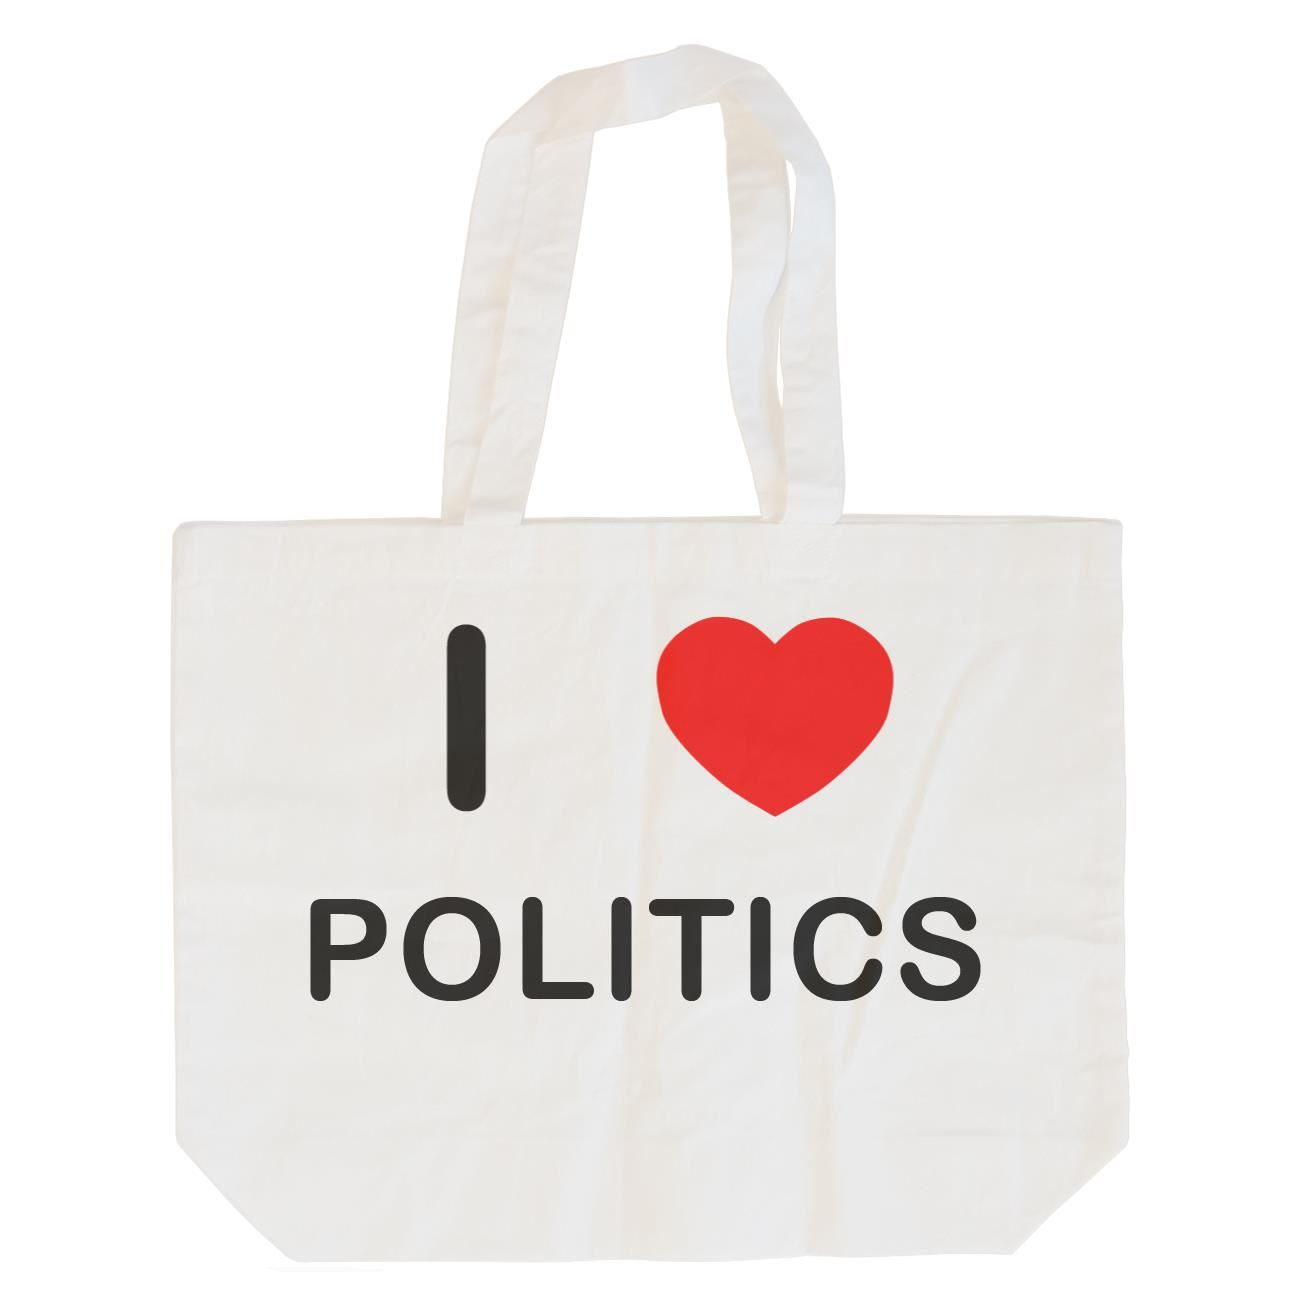 I Love Politics - Cotton Bag | Size choice Tote, Shopper or Sling